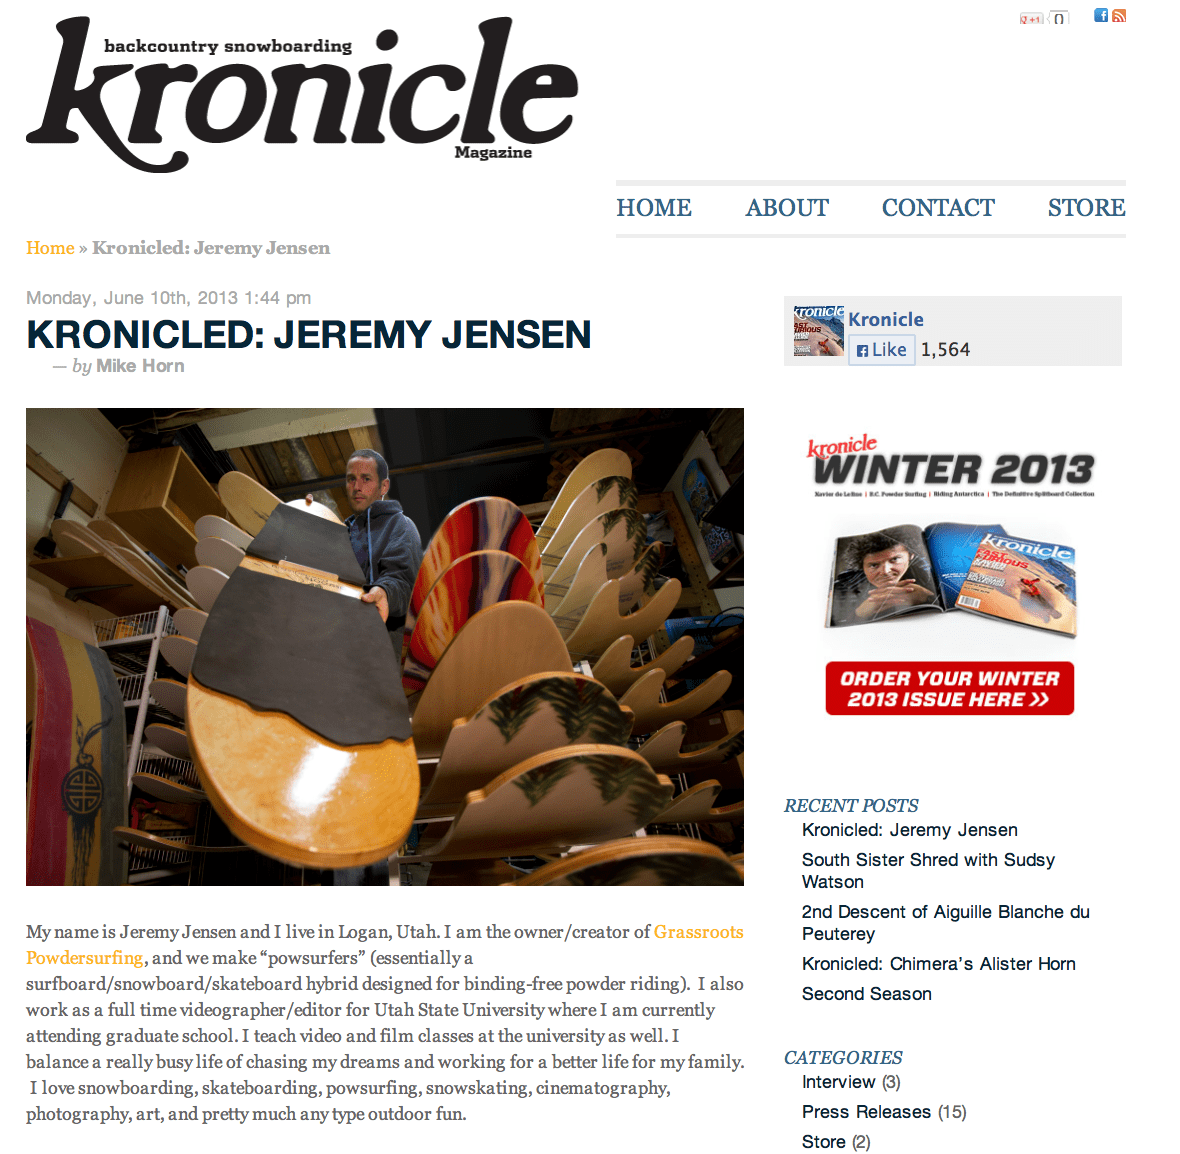 Kronicle Magazine Article featuring Jeremy Jensen, shaper and owner of Grassroots Powdersurfing.